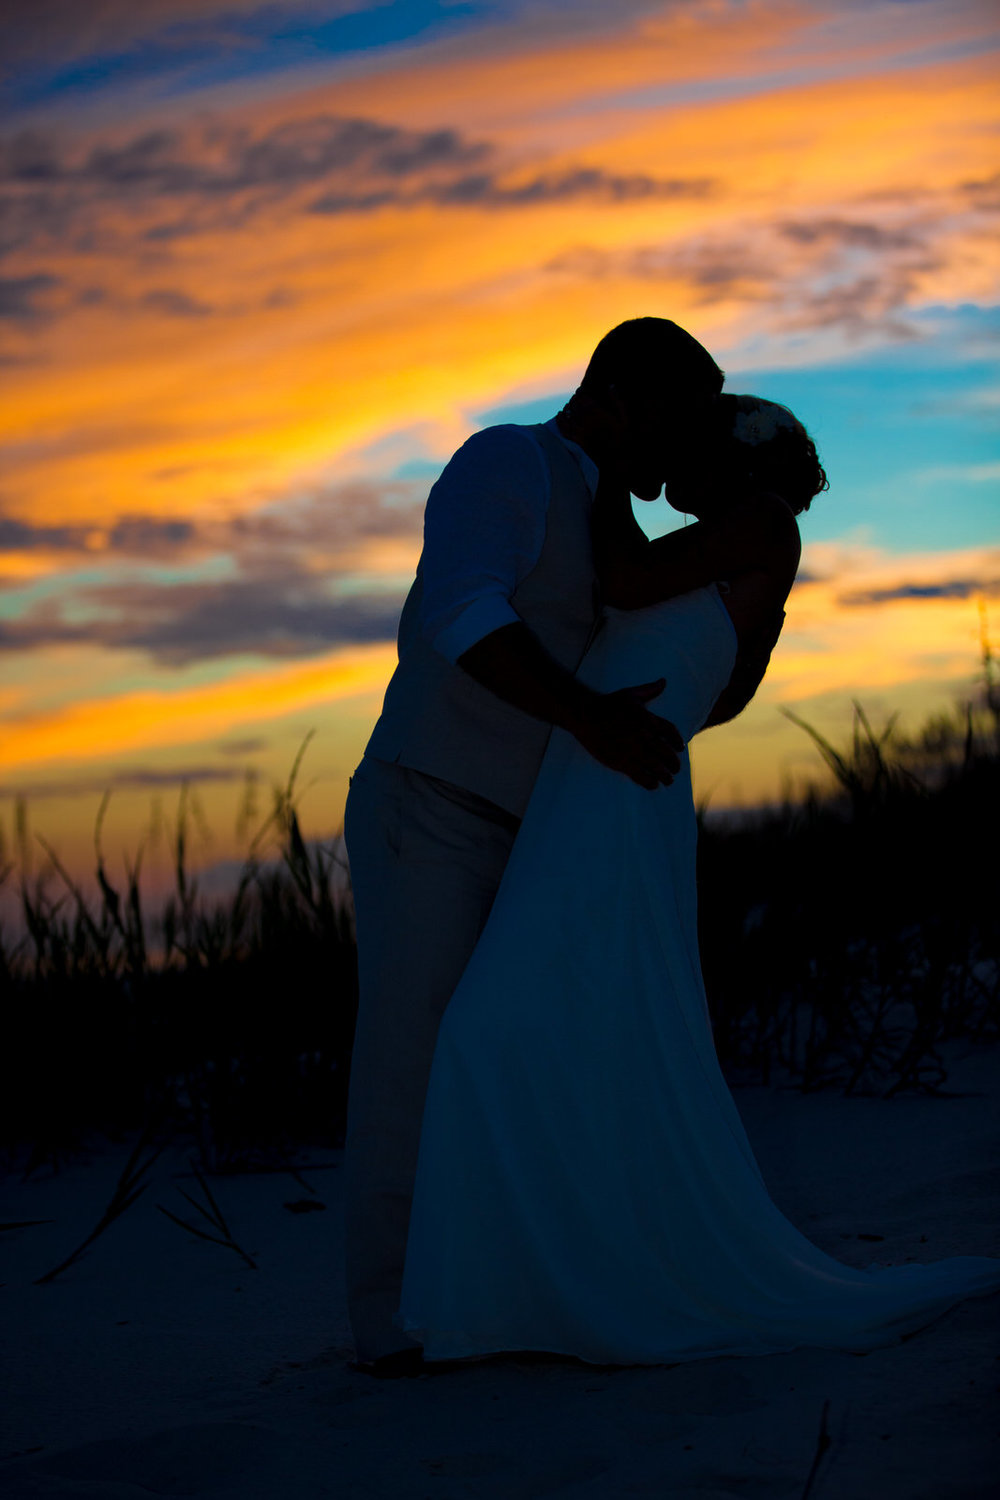 beach dream weddings orange beach al